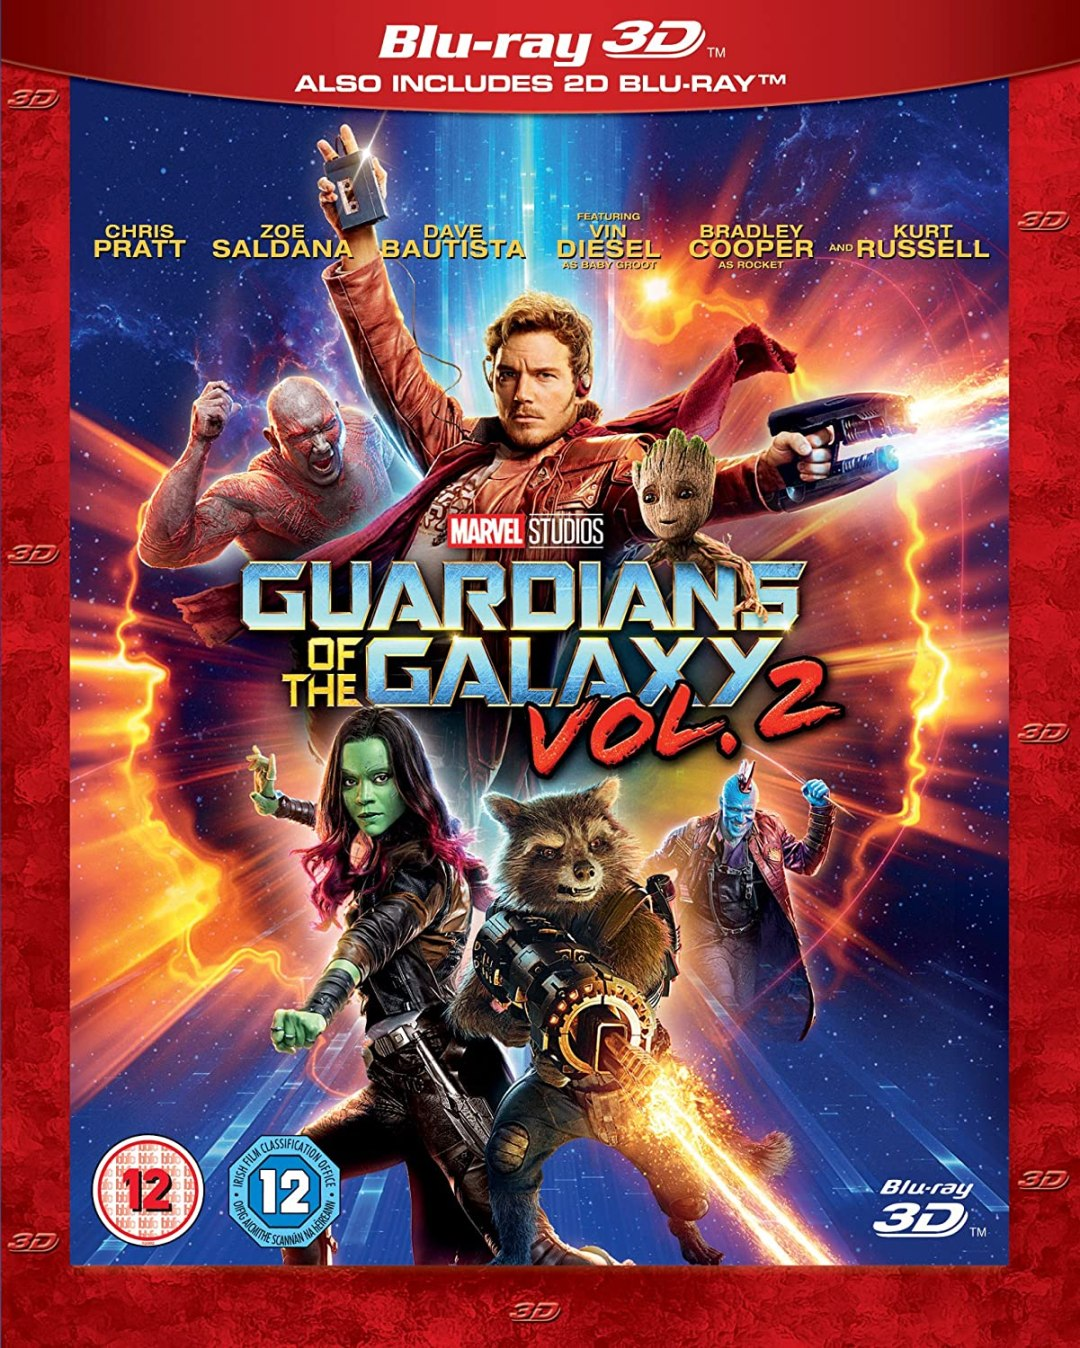 Guardians of the Galaxy Vol. 2 Blu-ray, DVD, & 4K Arrives In August 2017